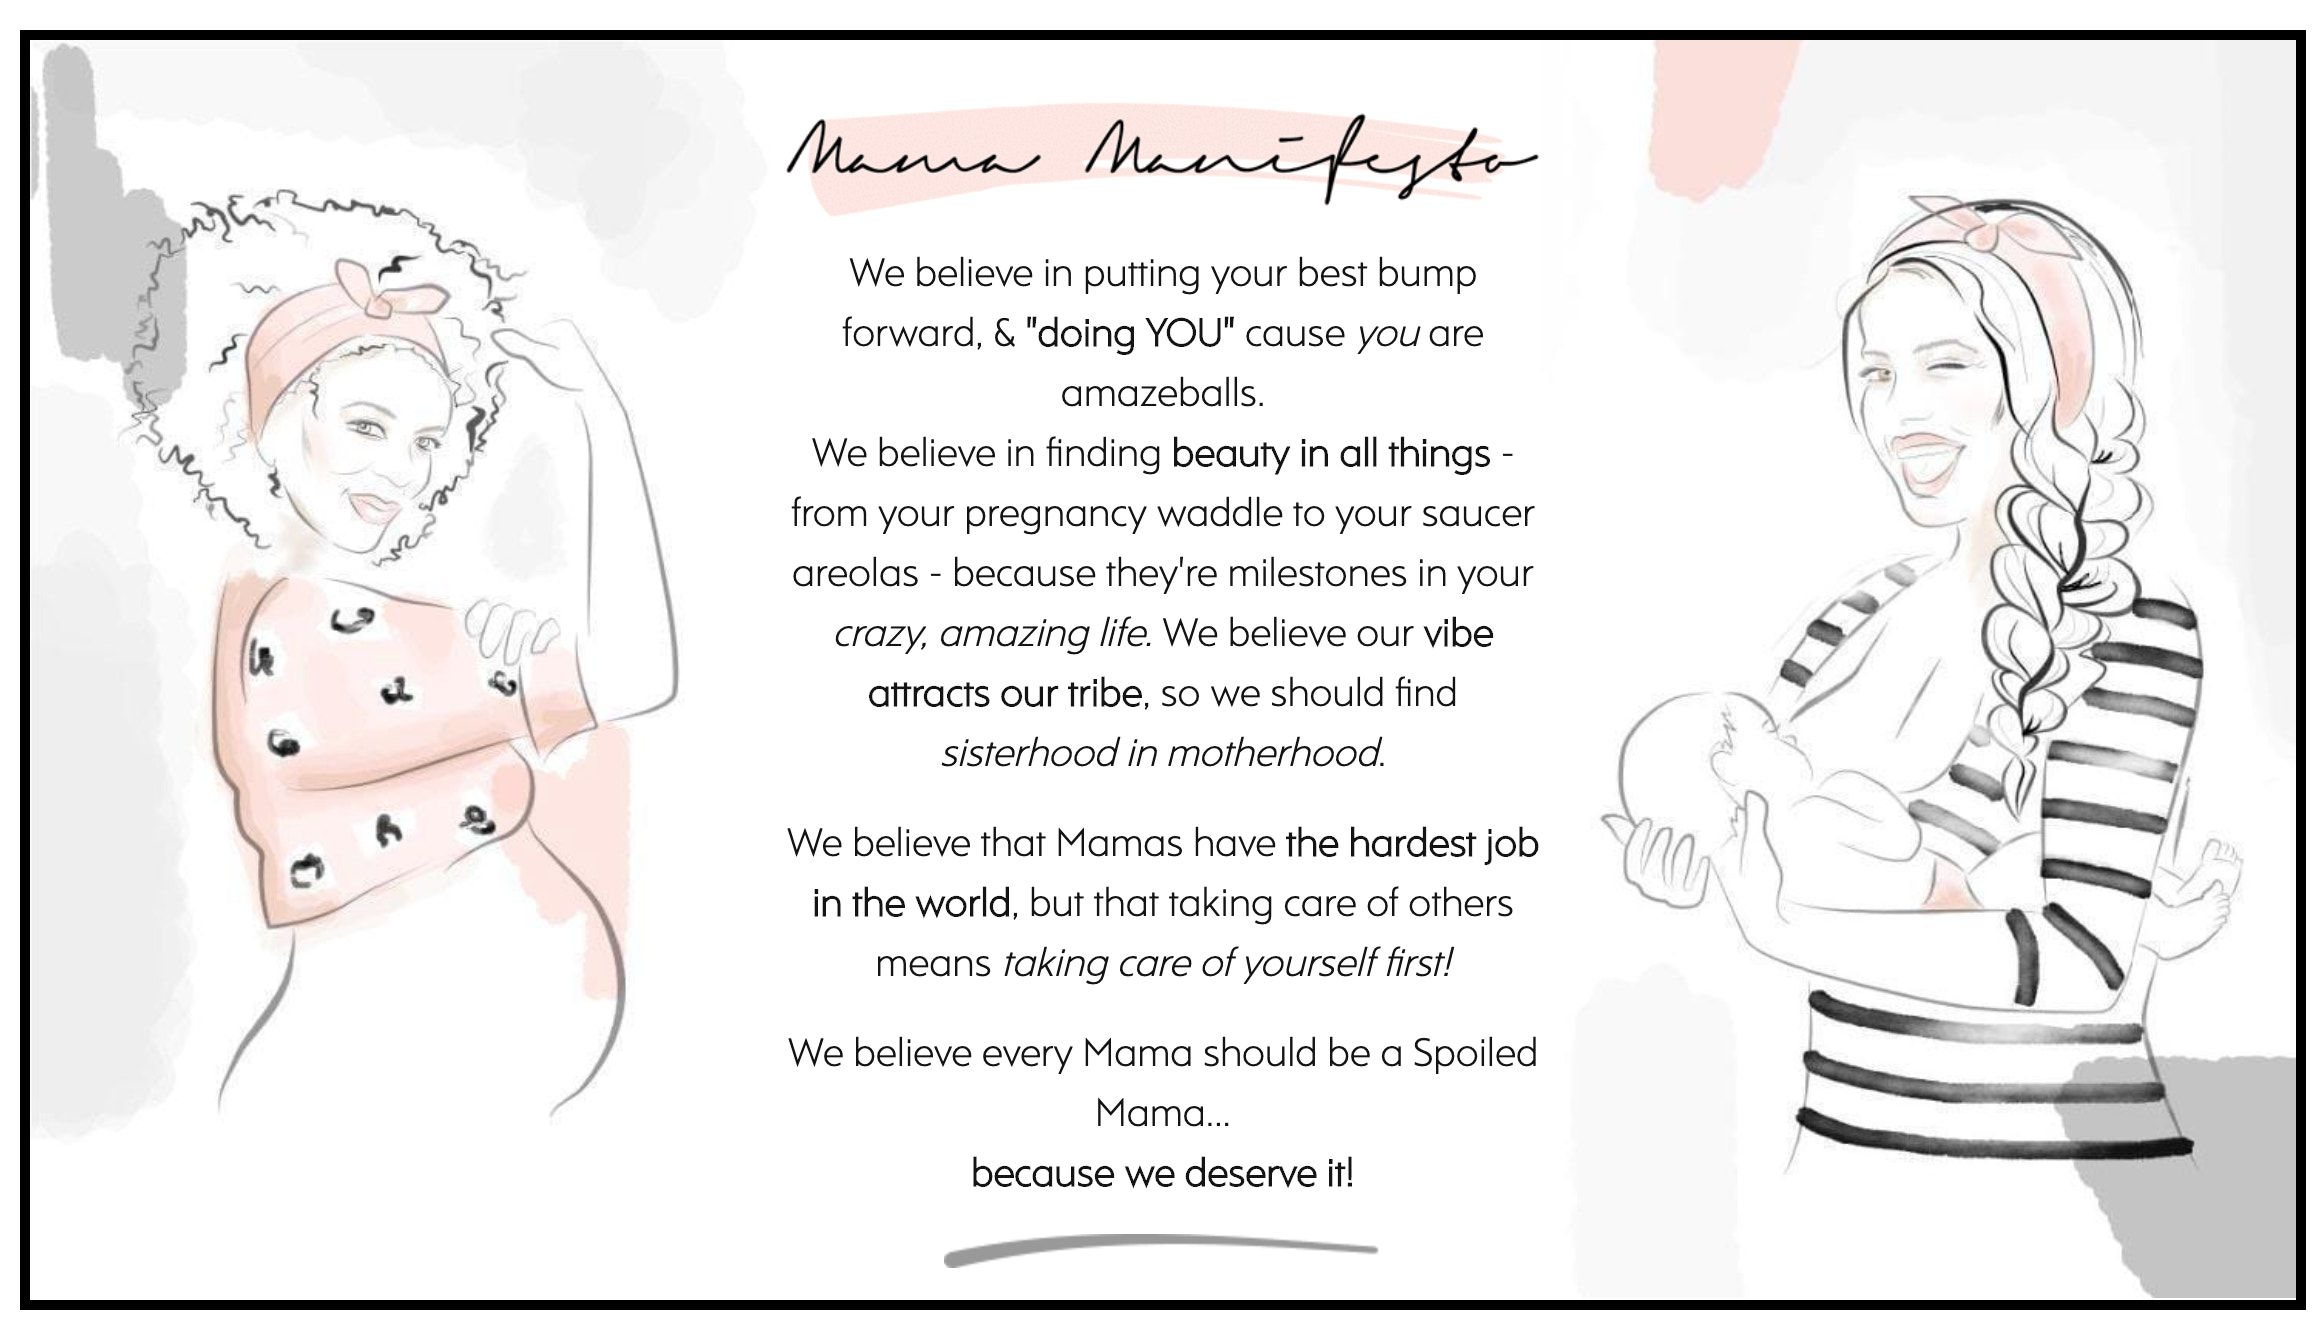 The Spoiled Mama Mission statement